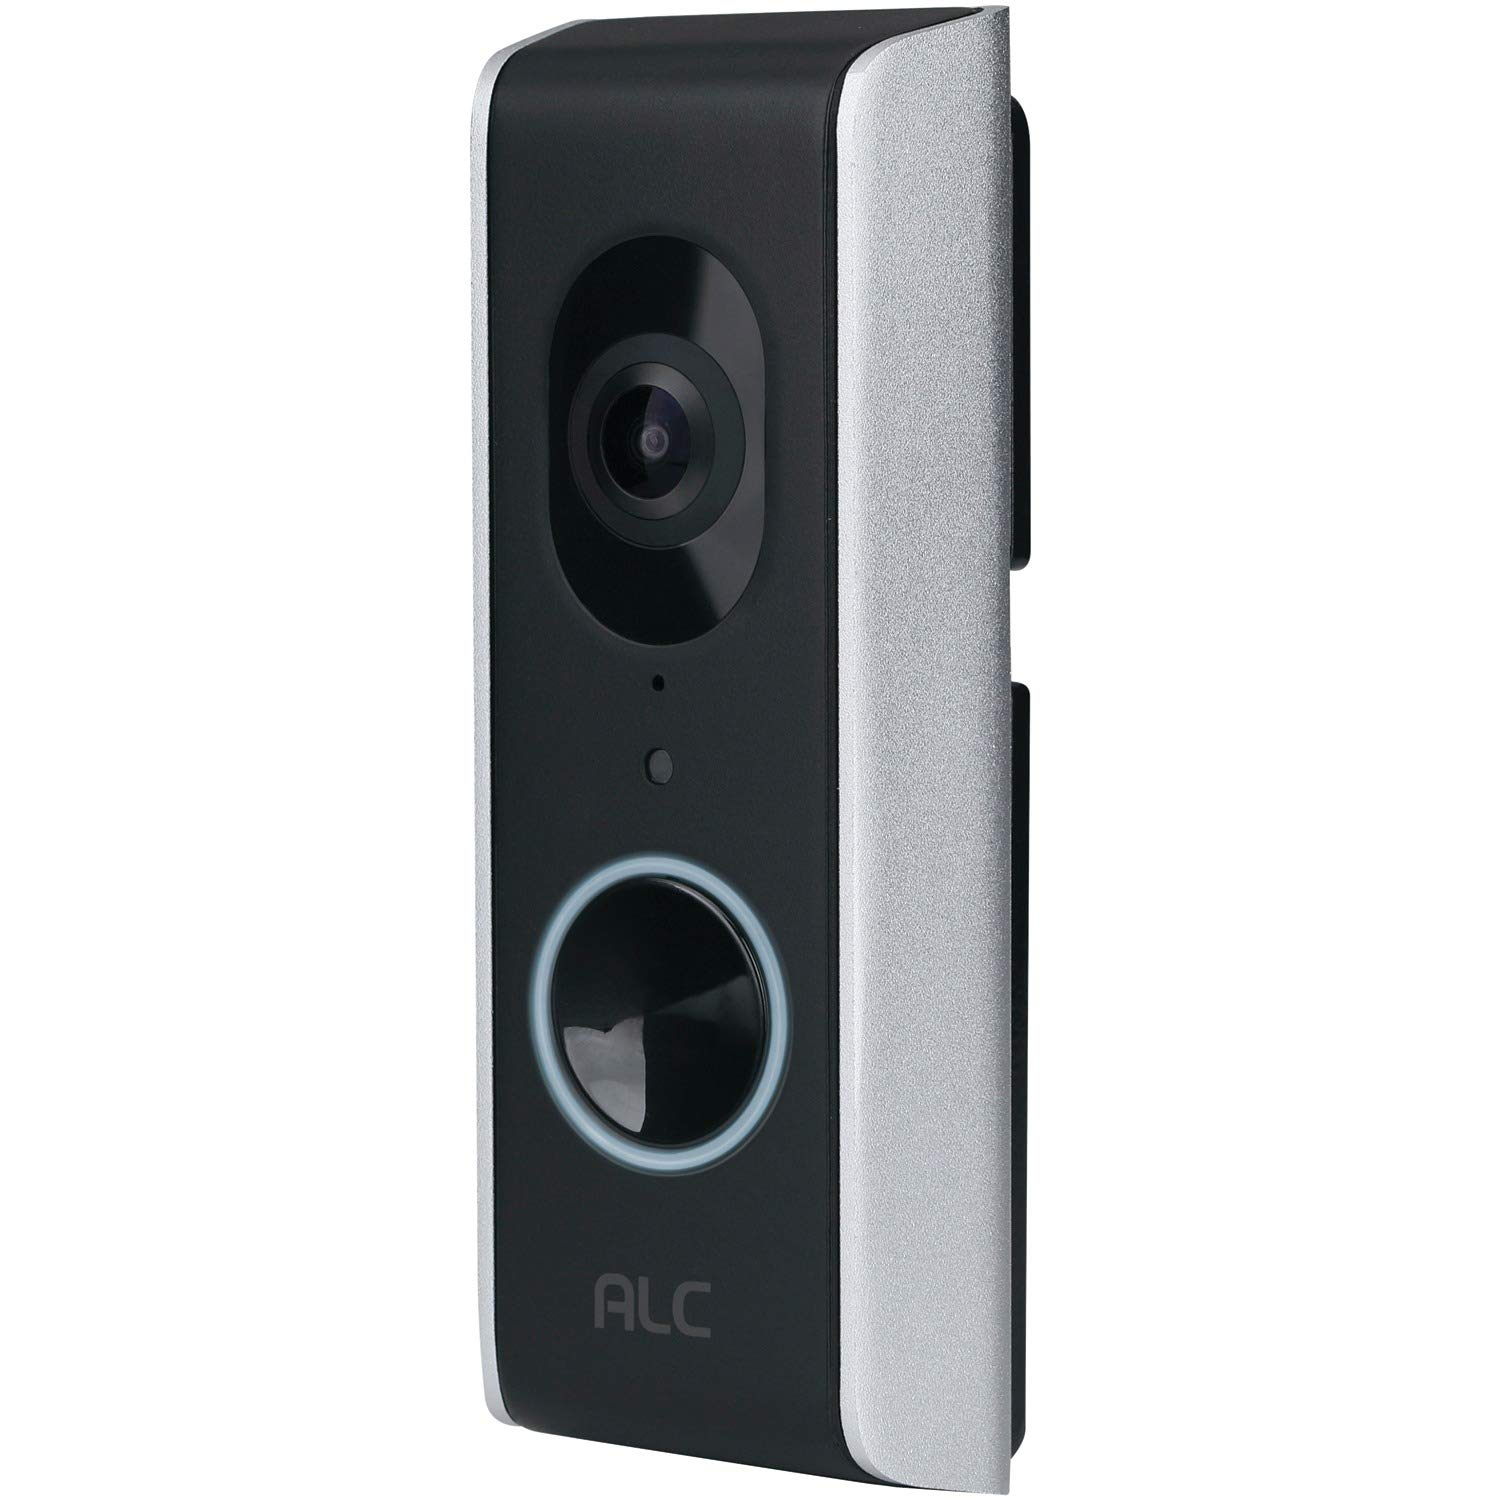 ALC AWF71D Sighthd Video Doorbell with 1080P Full HD Wi-Fi Camera by ALC (Image #2)